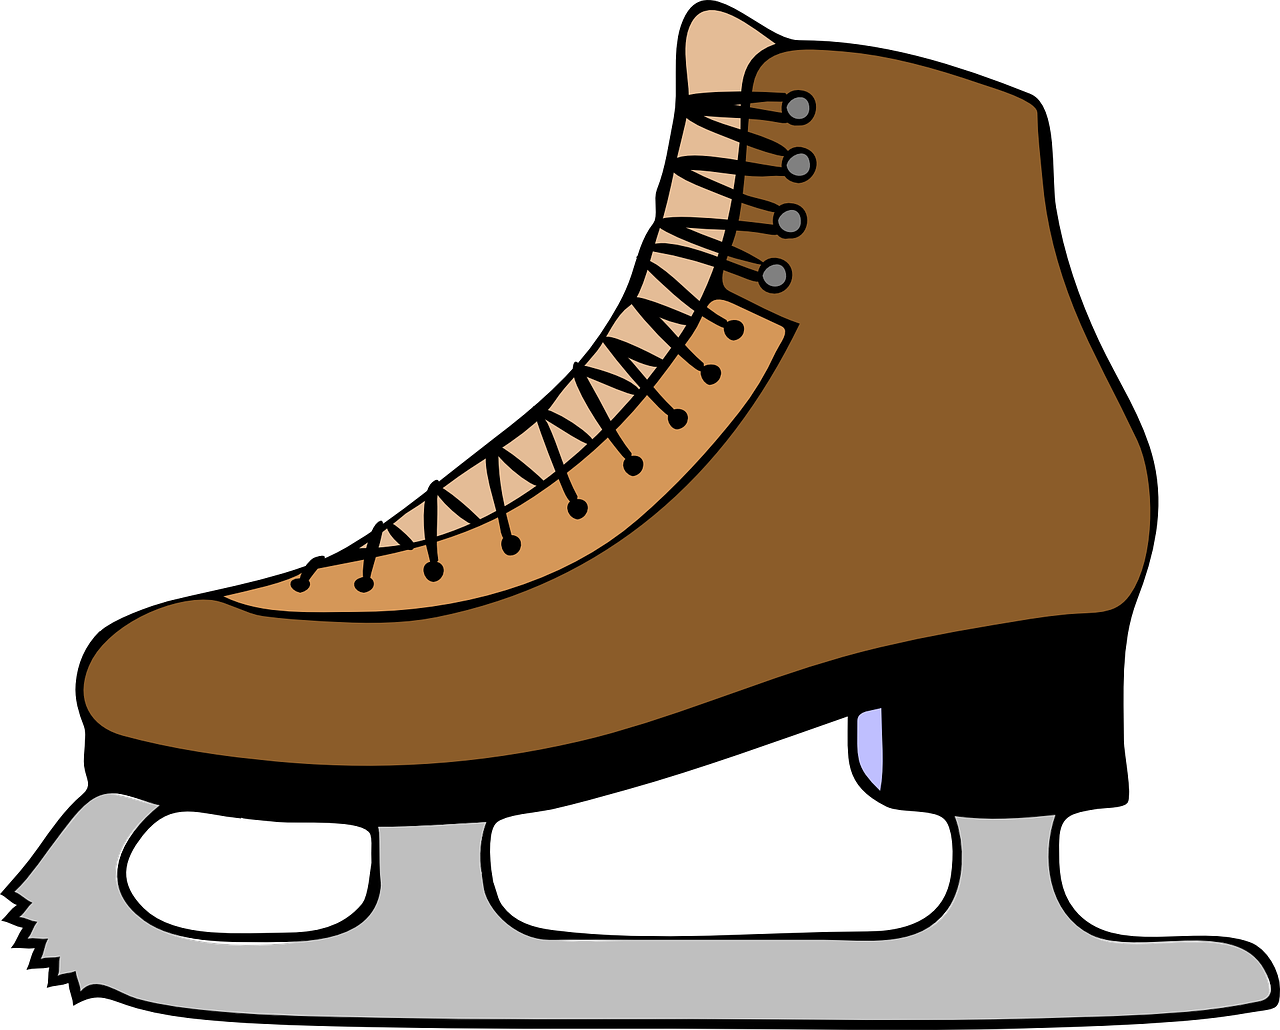 Winter clipart shoe. Pin by printer on